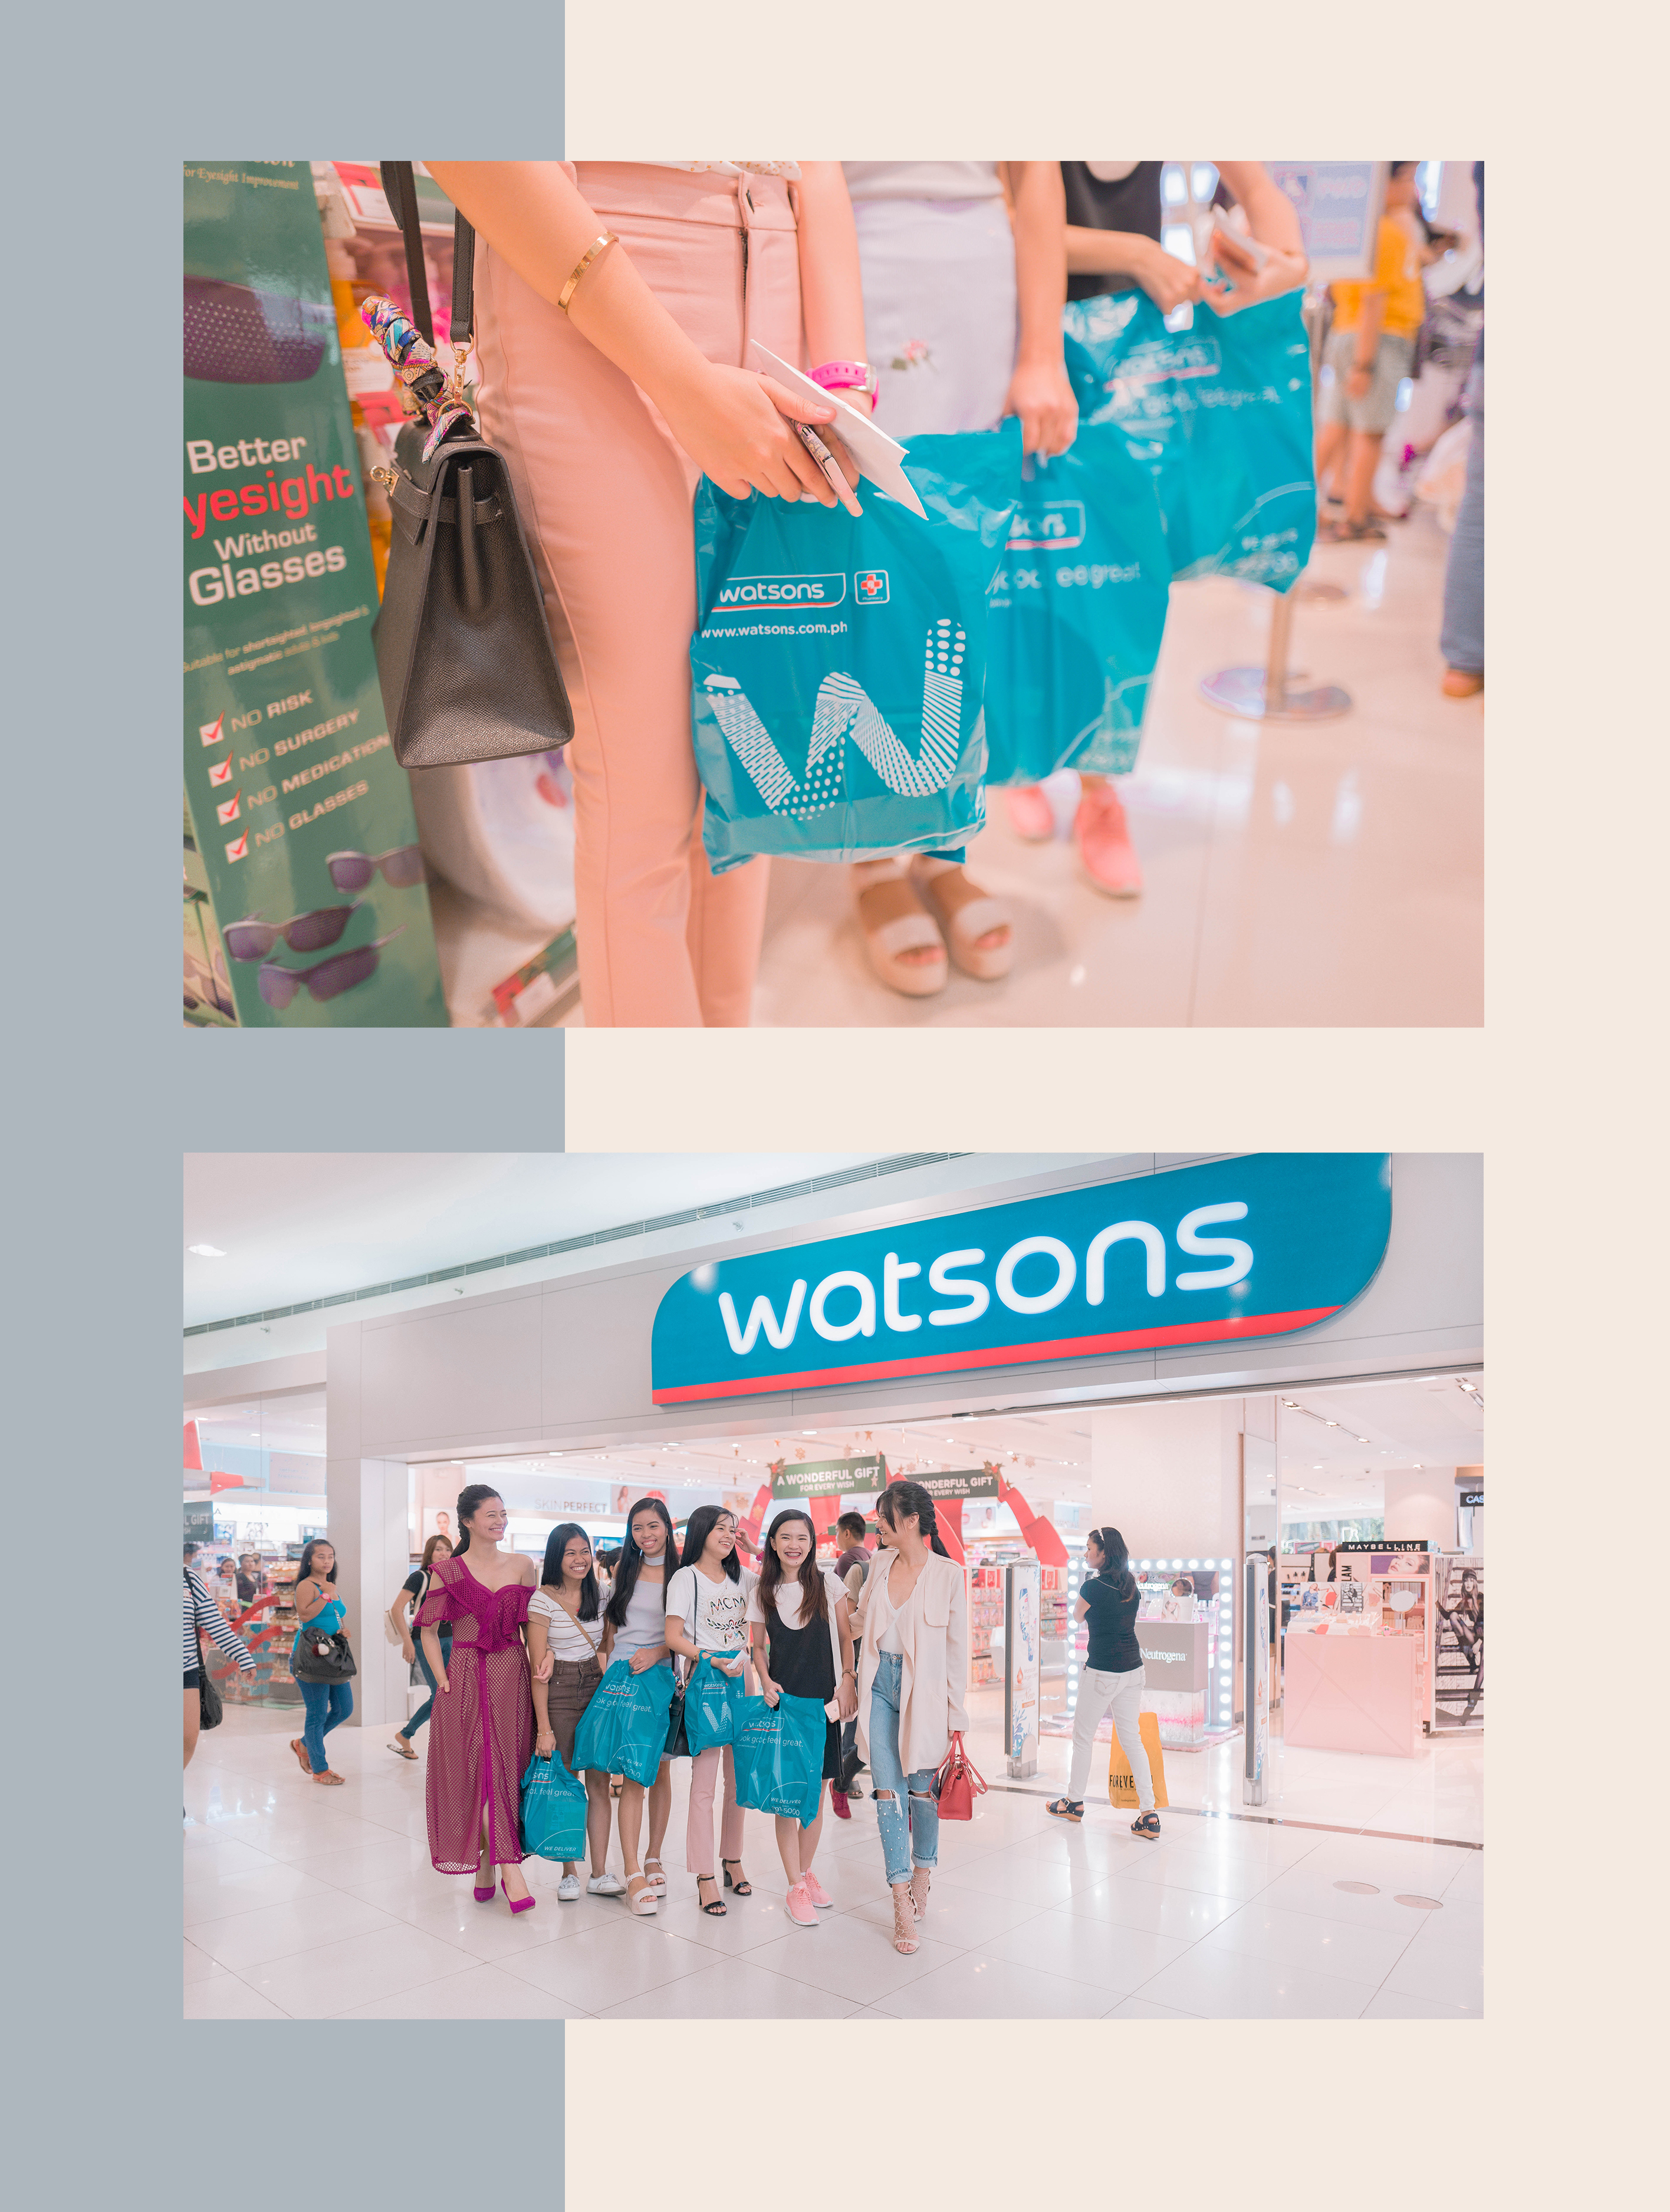 3. SM Accessories Watsons P4